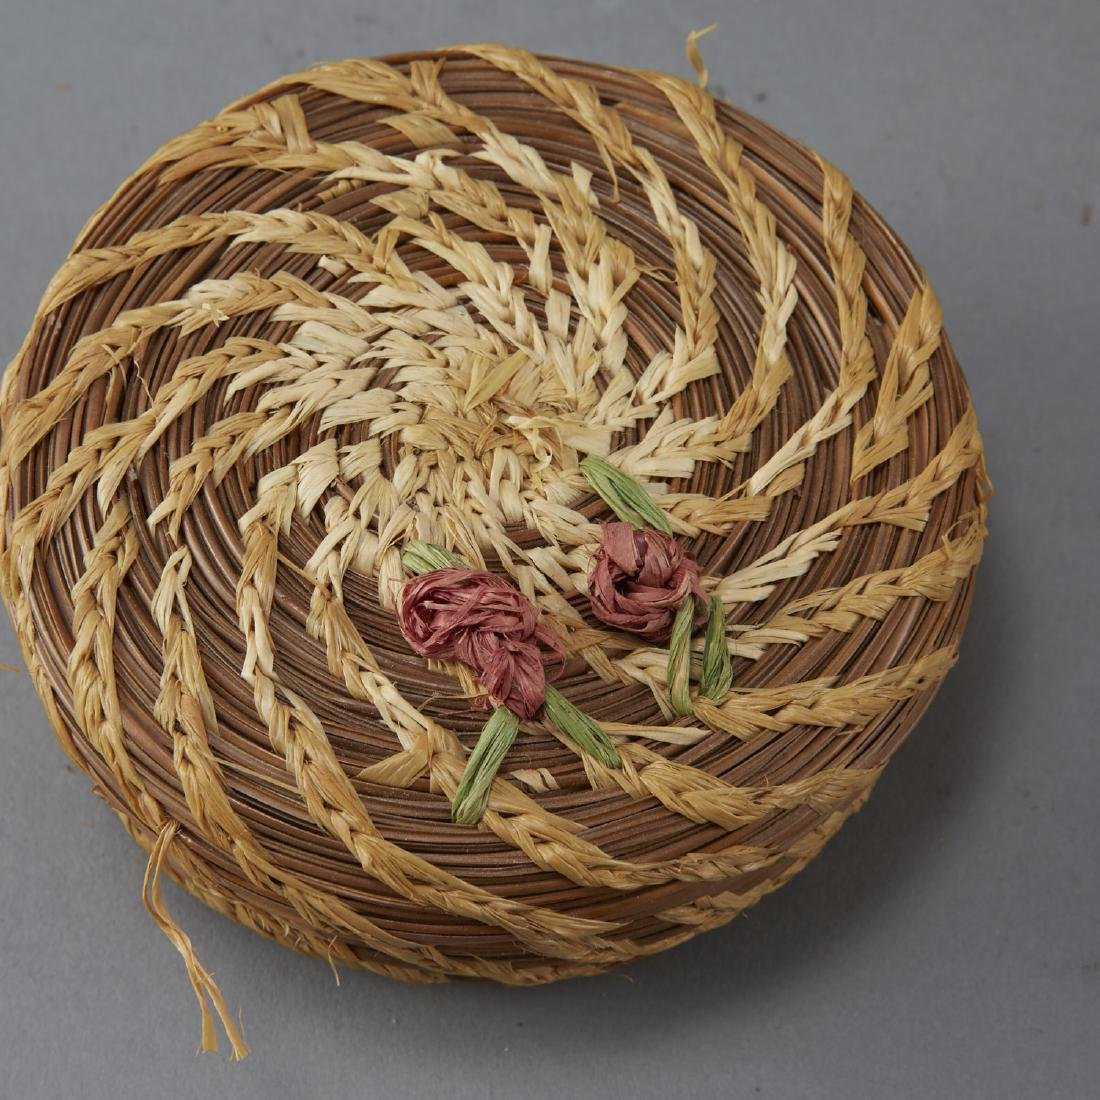 Group of 11 Native American Woven Objects - 5